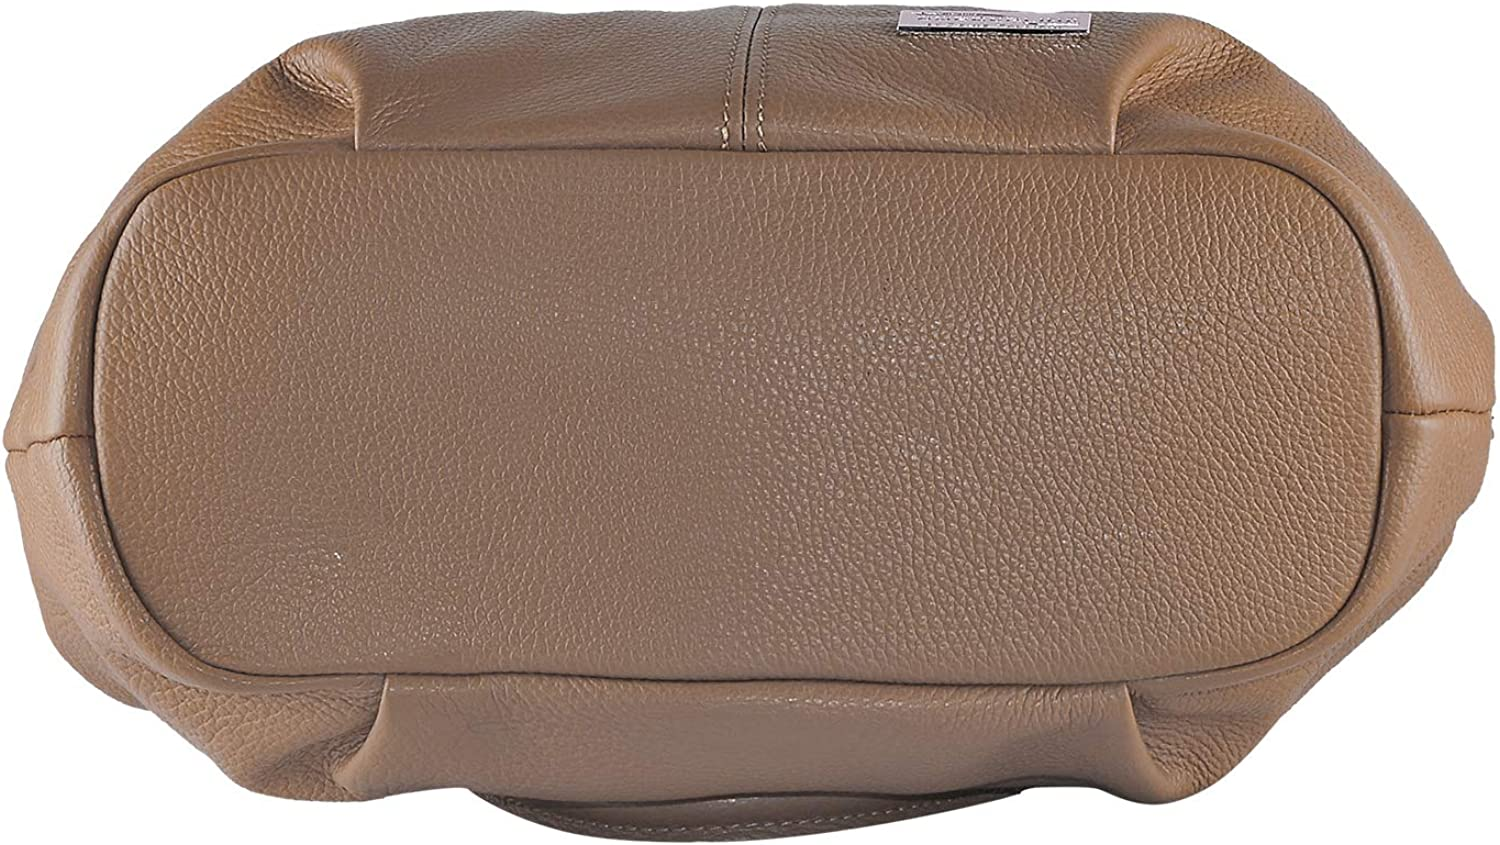 BORDERLINE - 100% Made in Italy - Borsa da Donna in Vera Pelle - GIADA Ml Cuoio